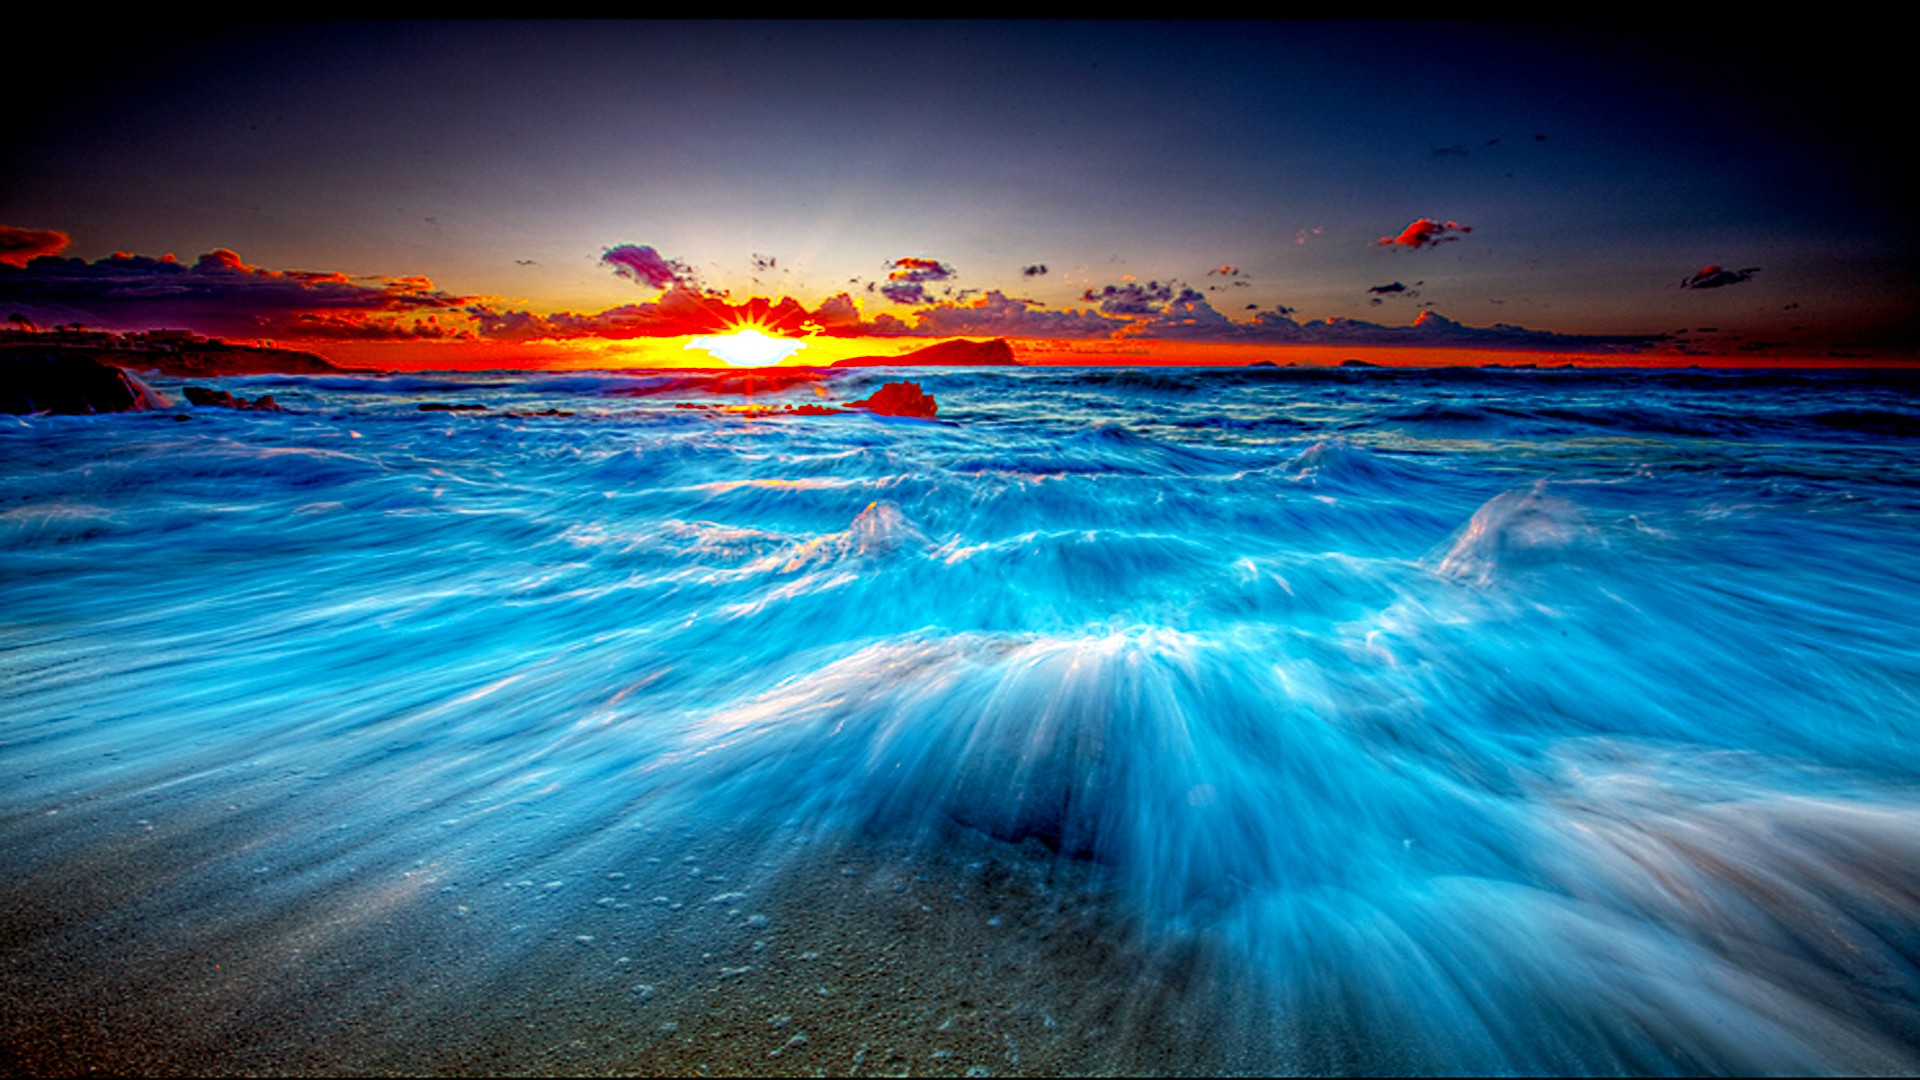 Ocean wave desktop wallpaper wallpapersafari - Ocean pictures for desktop background ...